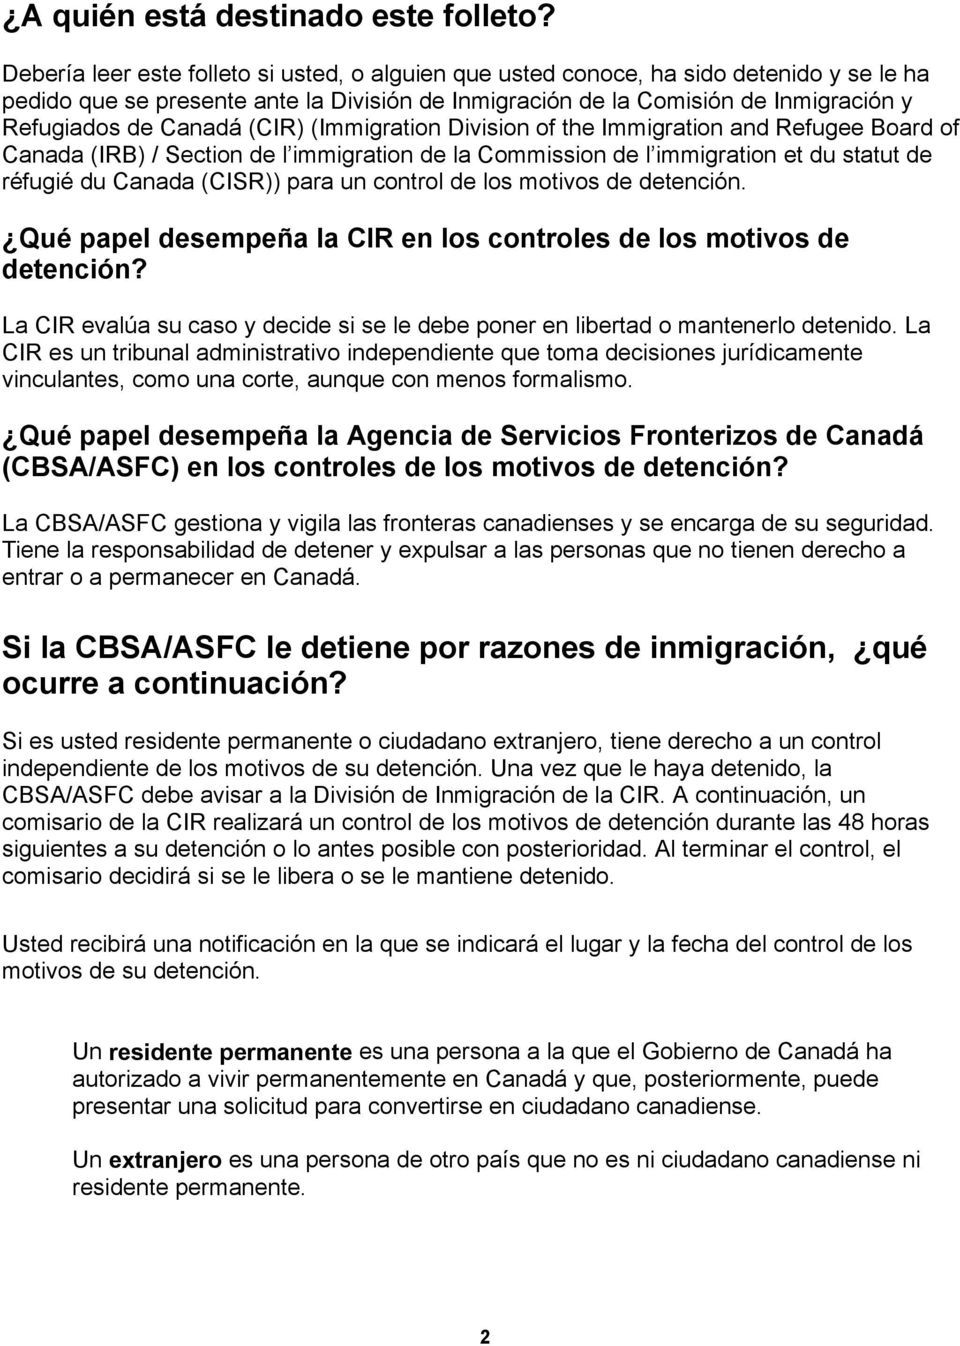 (CIR) (Immigration Division of the Immigration and Refugee Board of Canada (IRB) / Section de l immigration de la Commission de l immigration et du statut de réfugié du Canada (CISR)) para un control